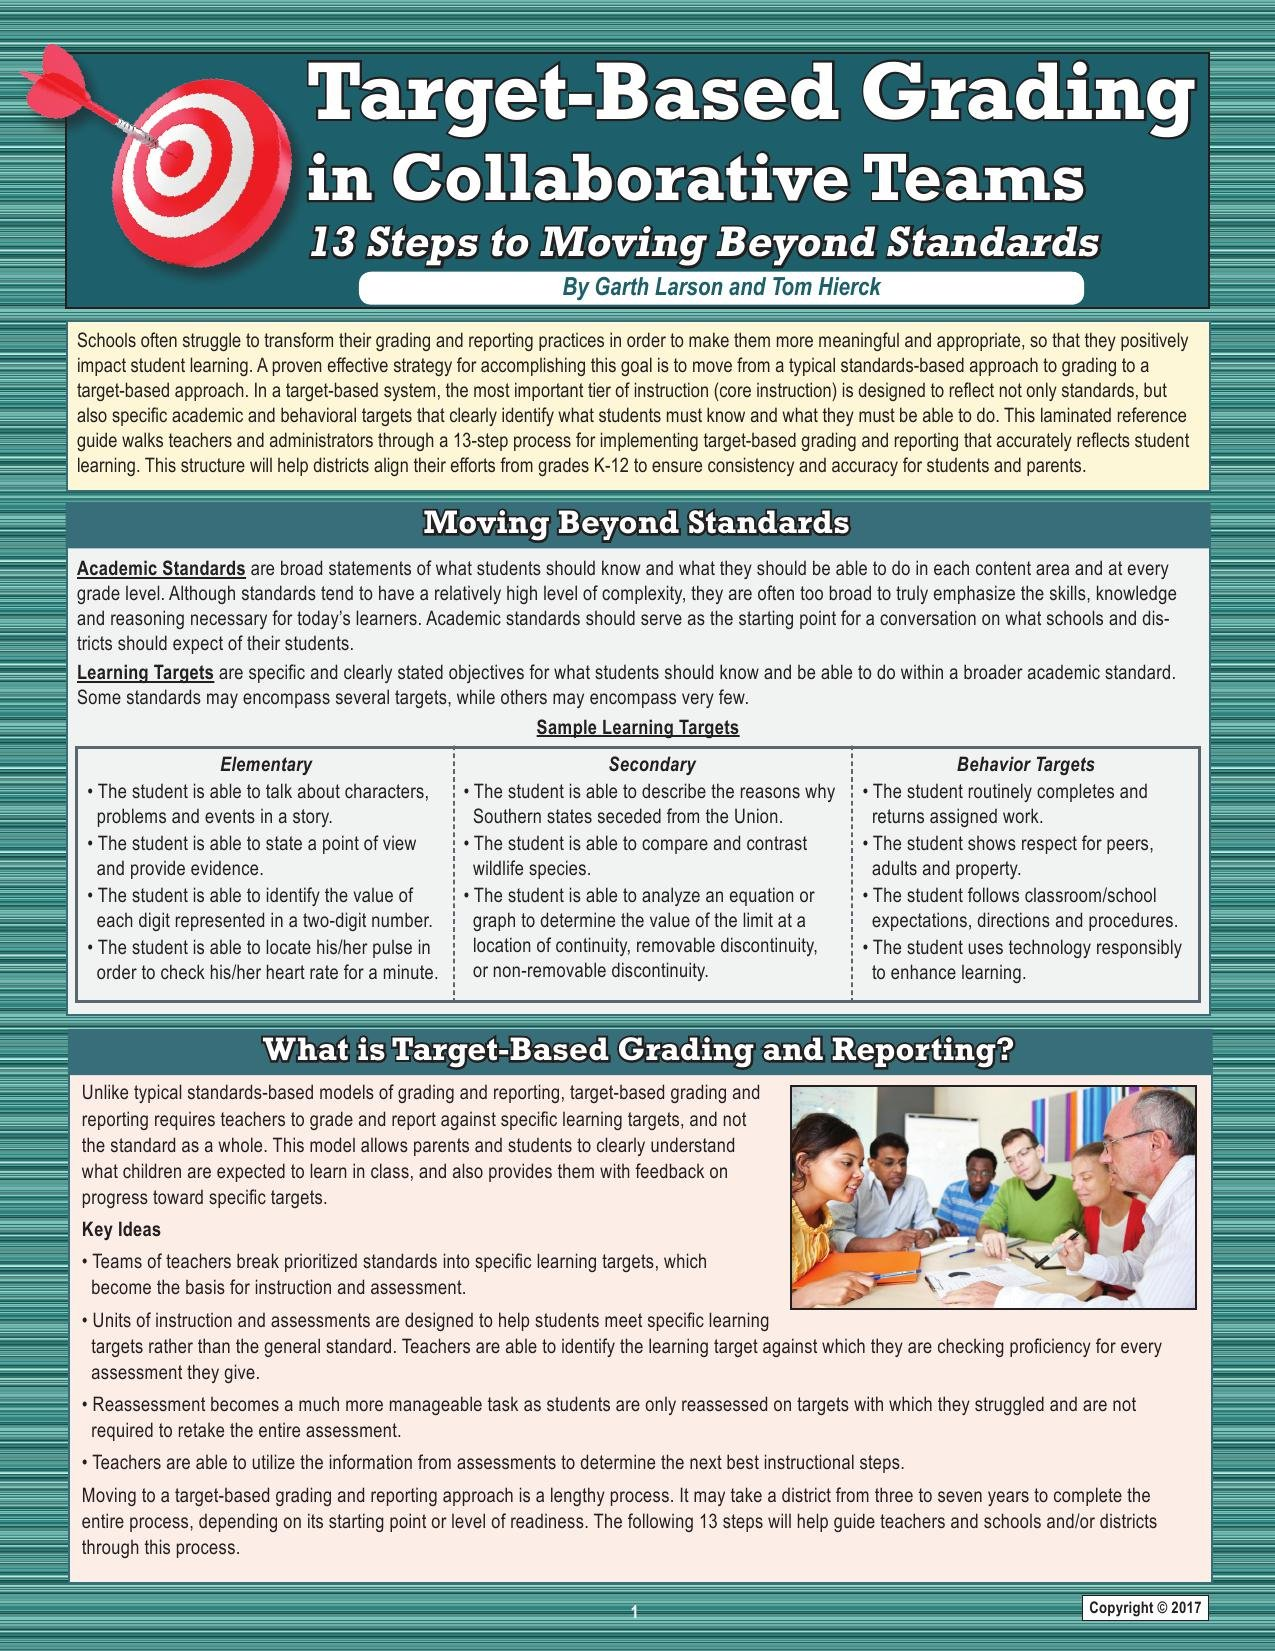 Target-Based Grading in Collaborative Teams: 13 Steps to